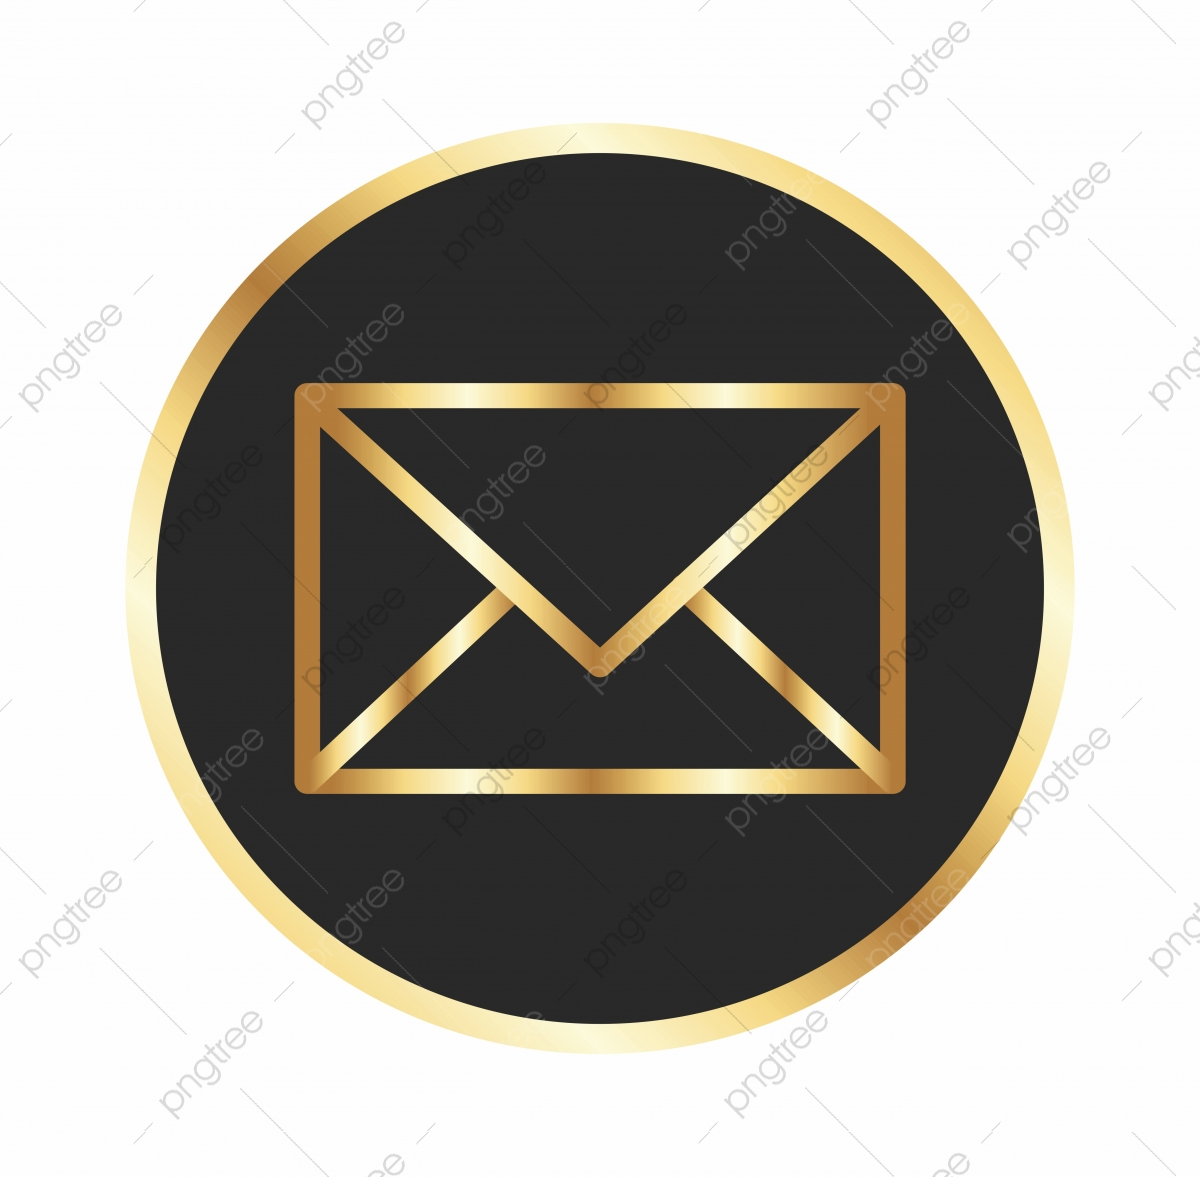 Email Png Images Vector And Psd Files Free Download On Pngtree